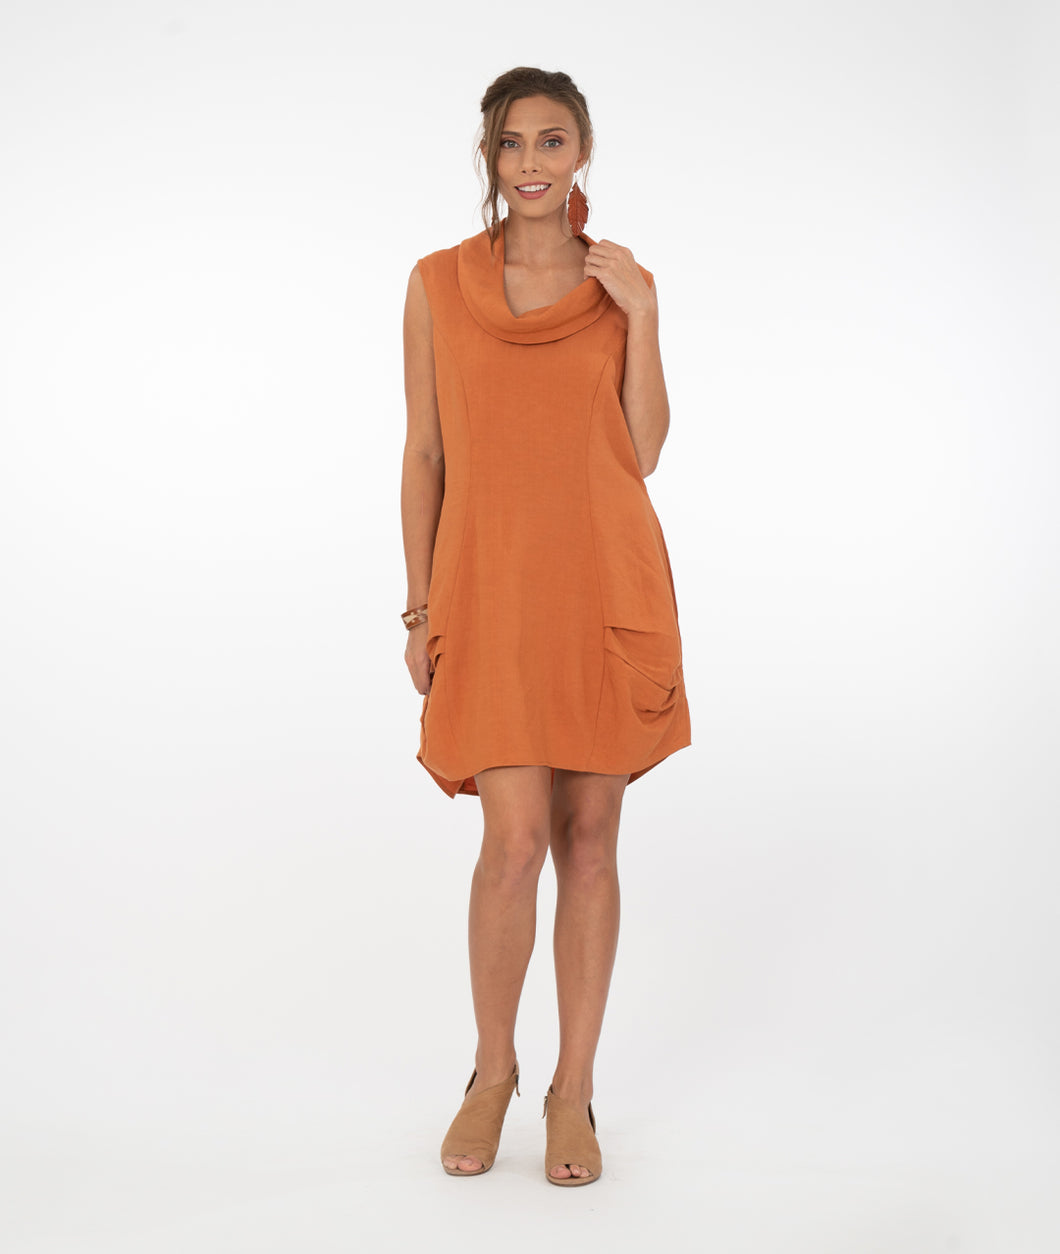 model in a rust colored sleeveless tunic with a cowl neck and pleats at the bottom hem